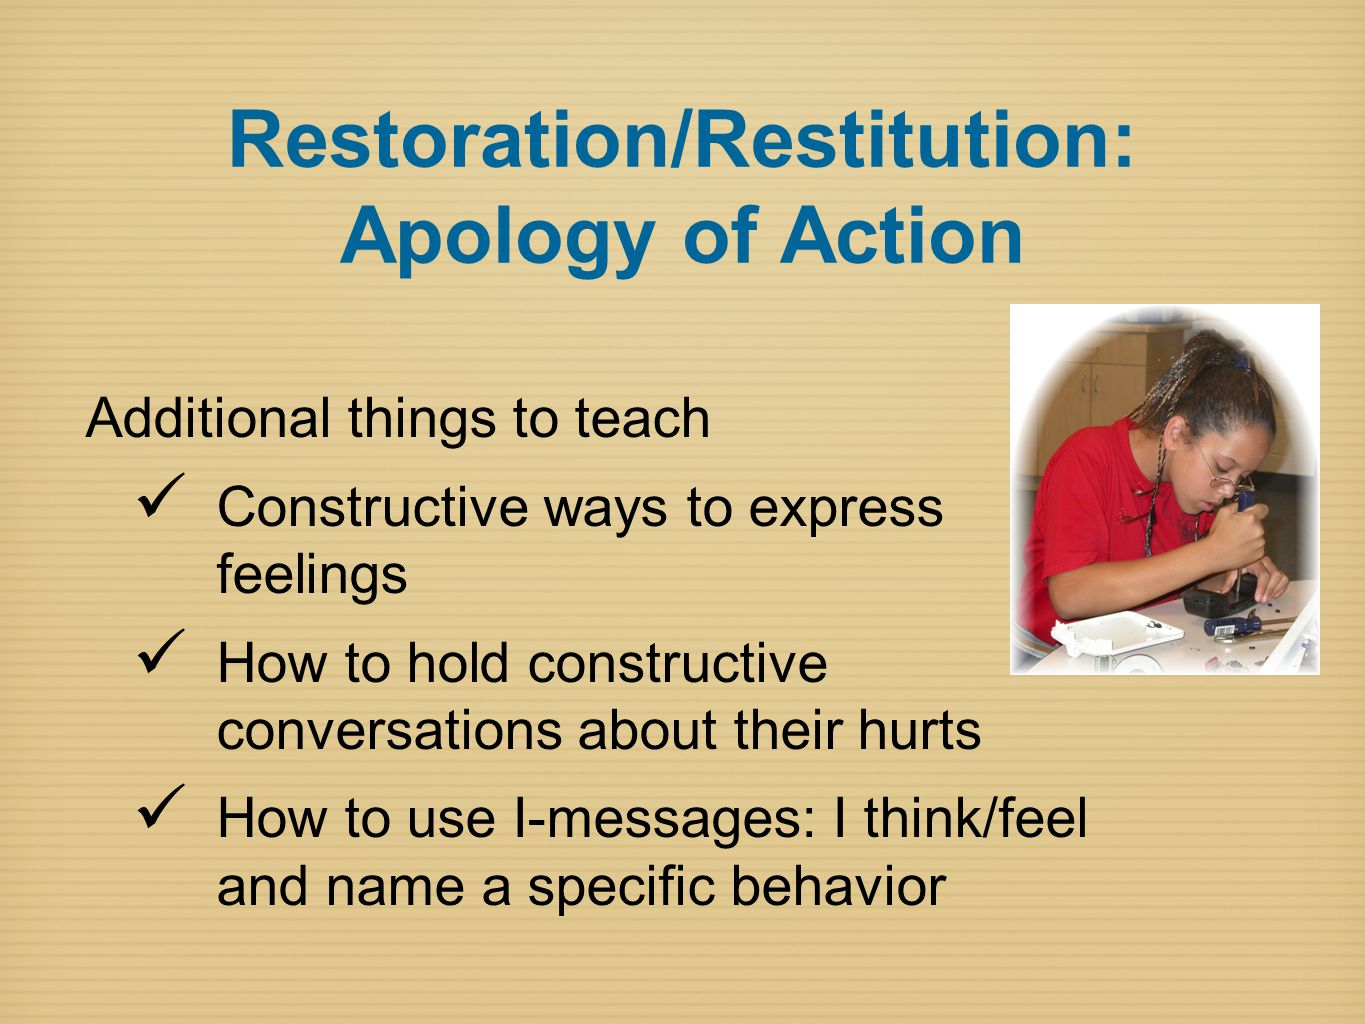 Restoration/Restitution: Apology of Action Additional things to teach Constructive ways to express feelings How to hold constructive conversations about their hurts How to use I-messages: I think/feel and name a specific behavior